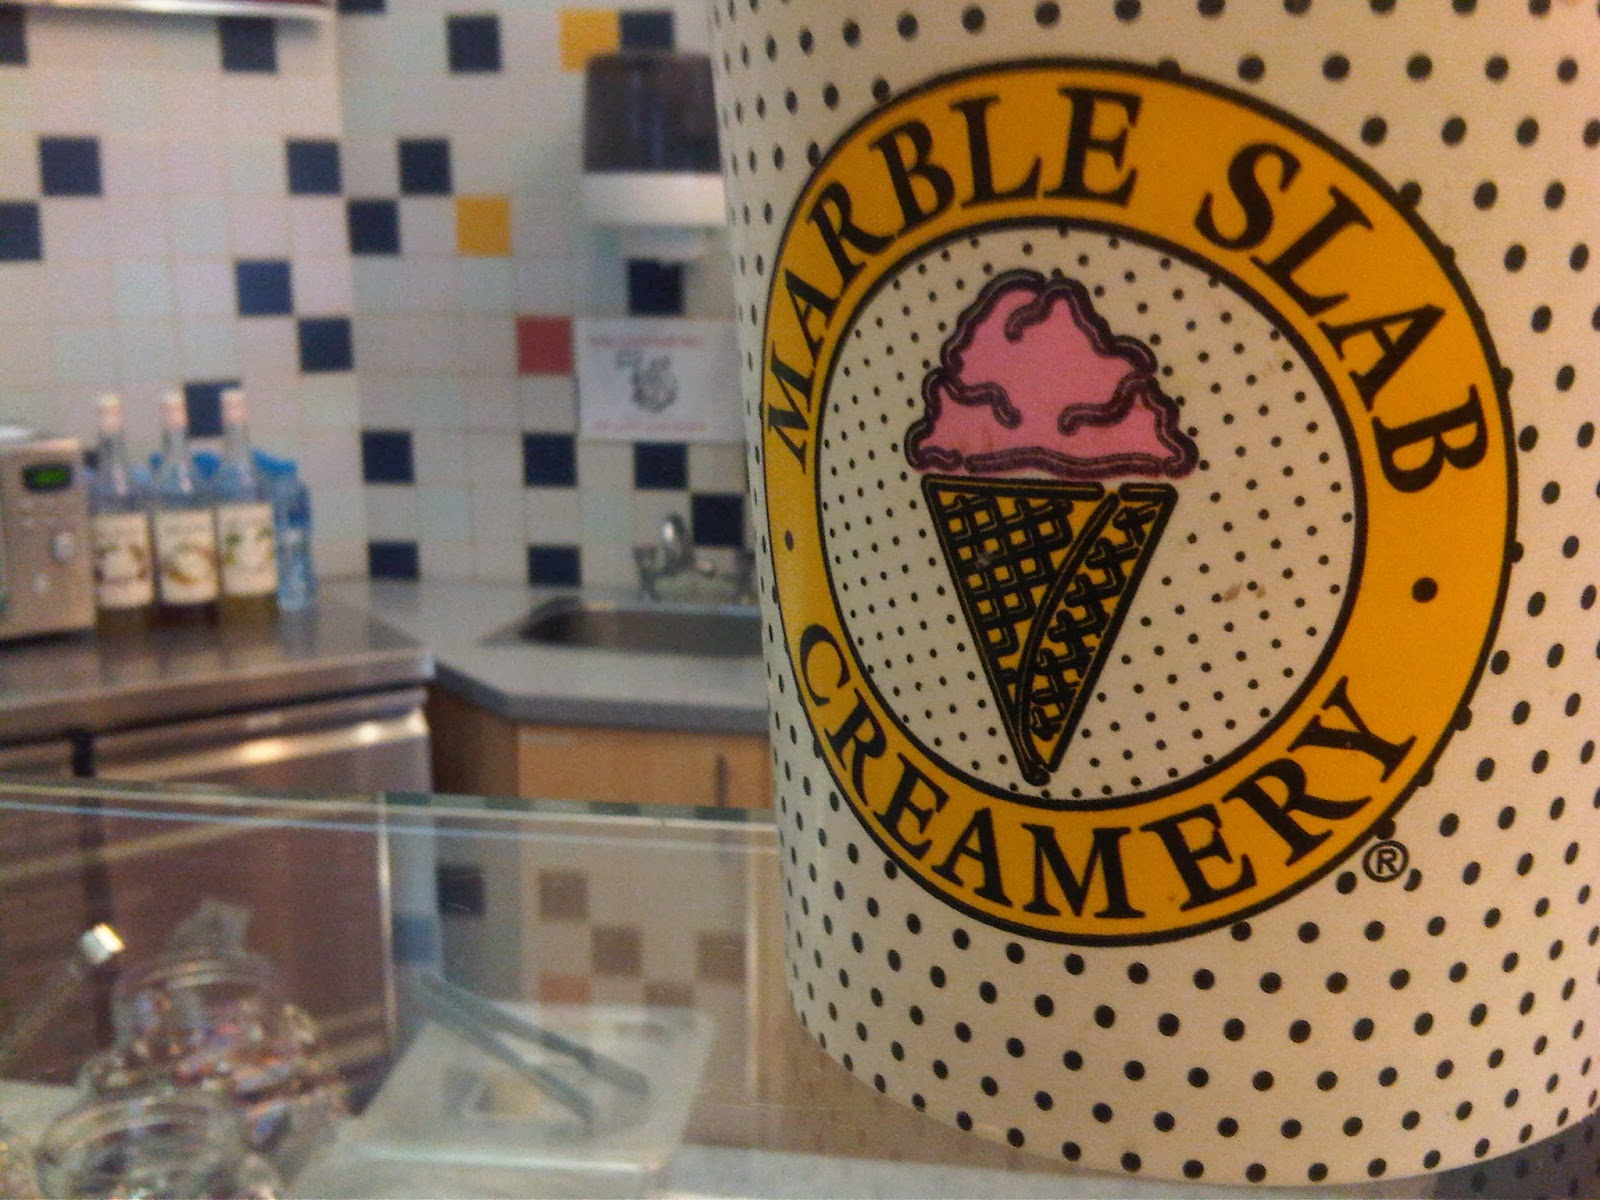 Marble Slab Creamery: 50% Off Through Groupon | Spend Less ...